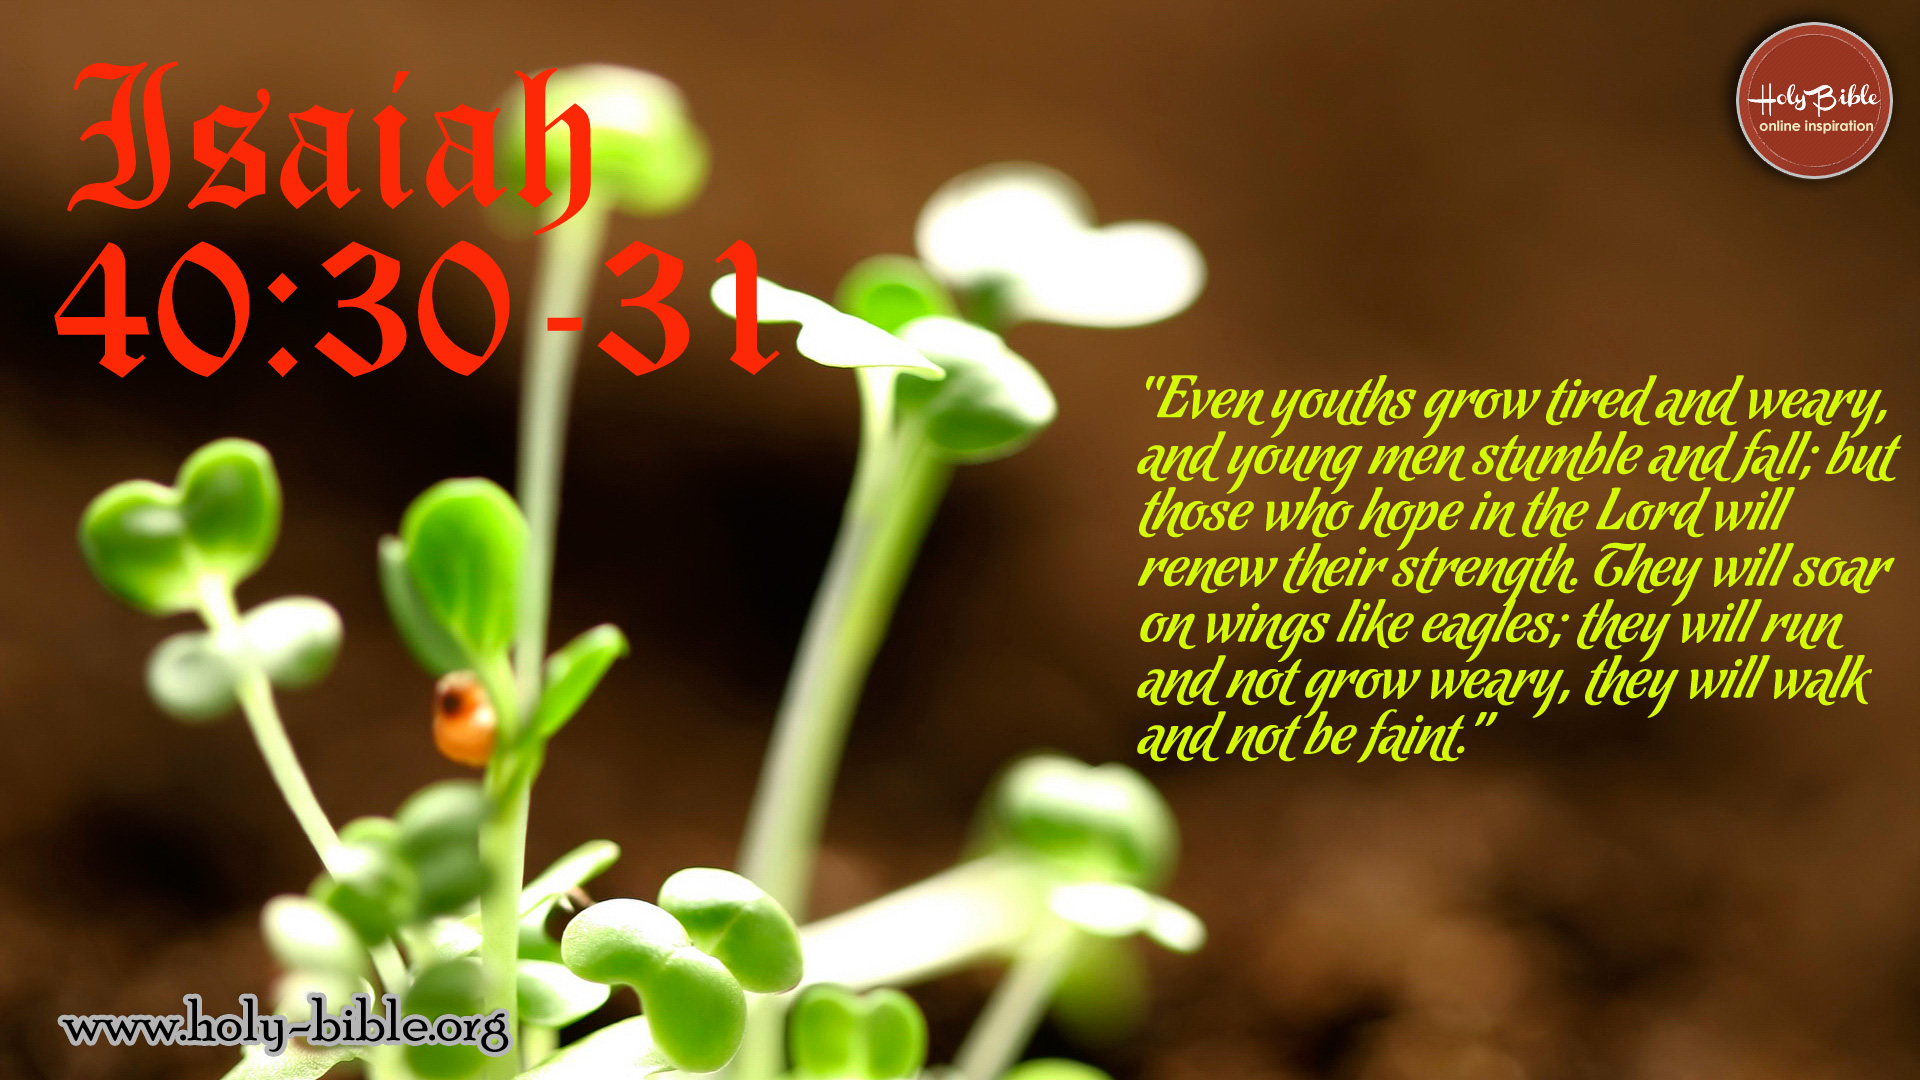 Bible Verse of the day - Isaiah 40:30-31